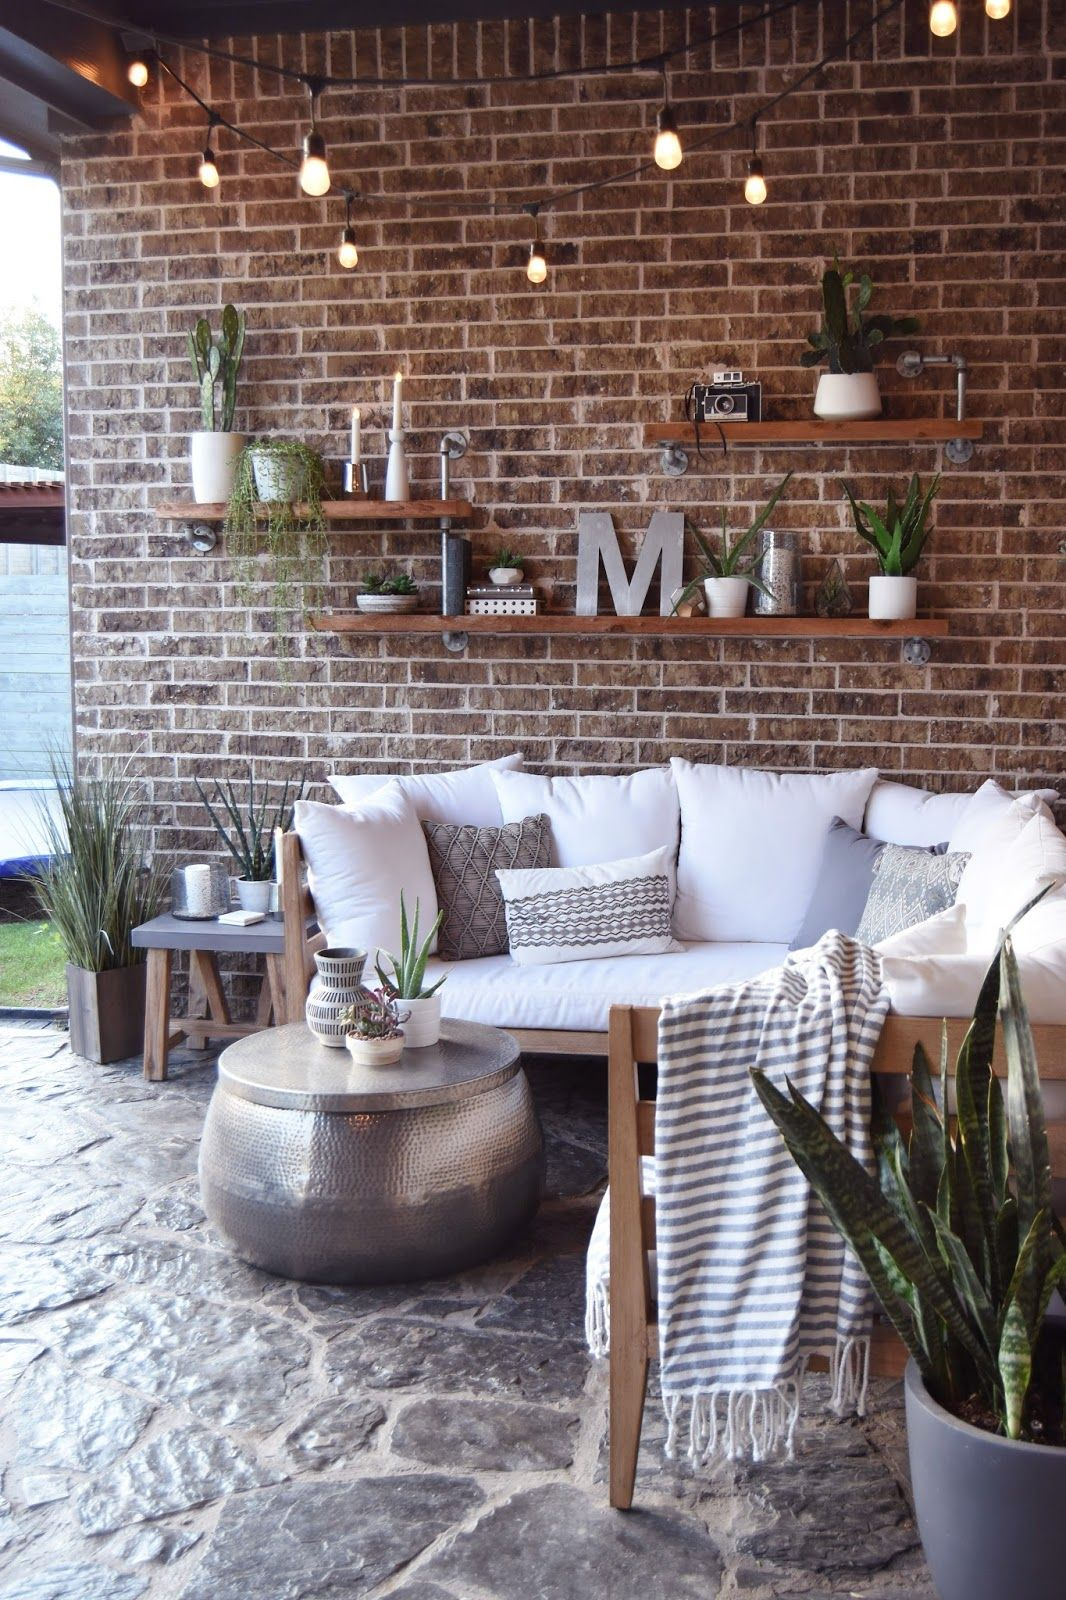 The Japanese Style With Contemporary Light Fixtures In The Mix Patio Wall Decor Patio Wall Patio Design